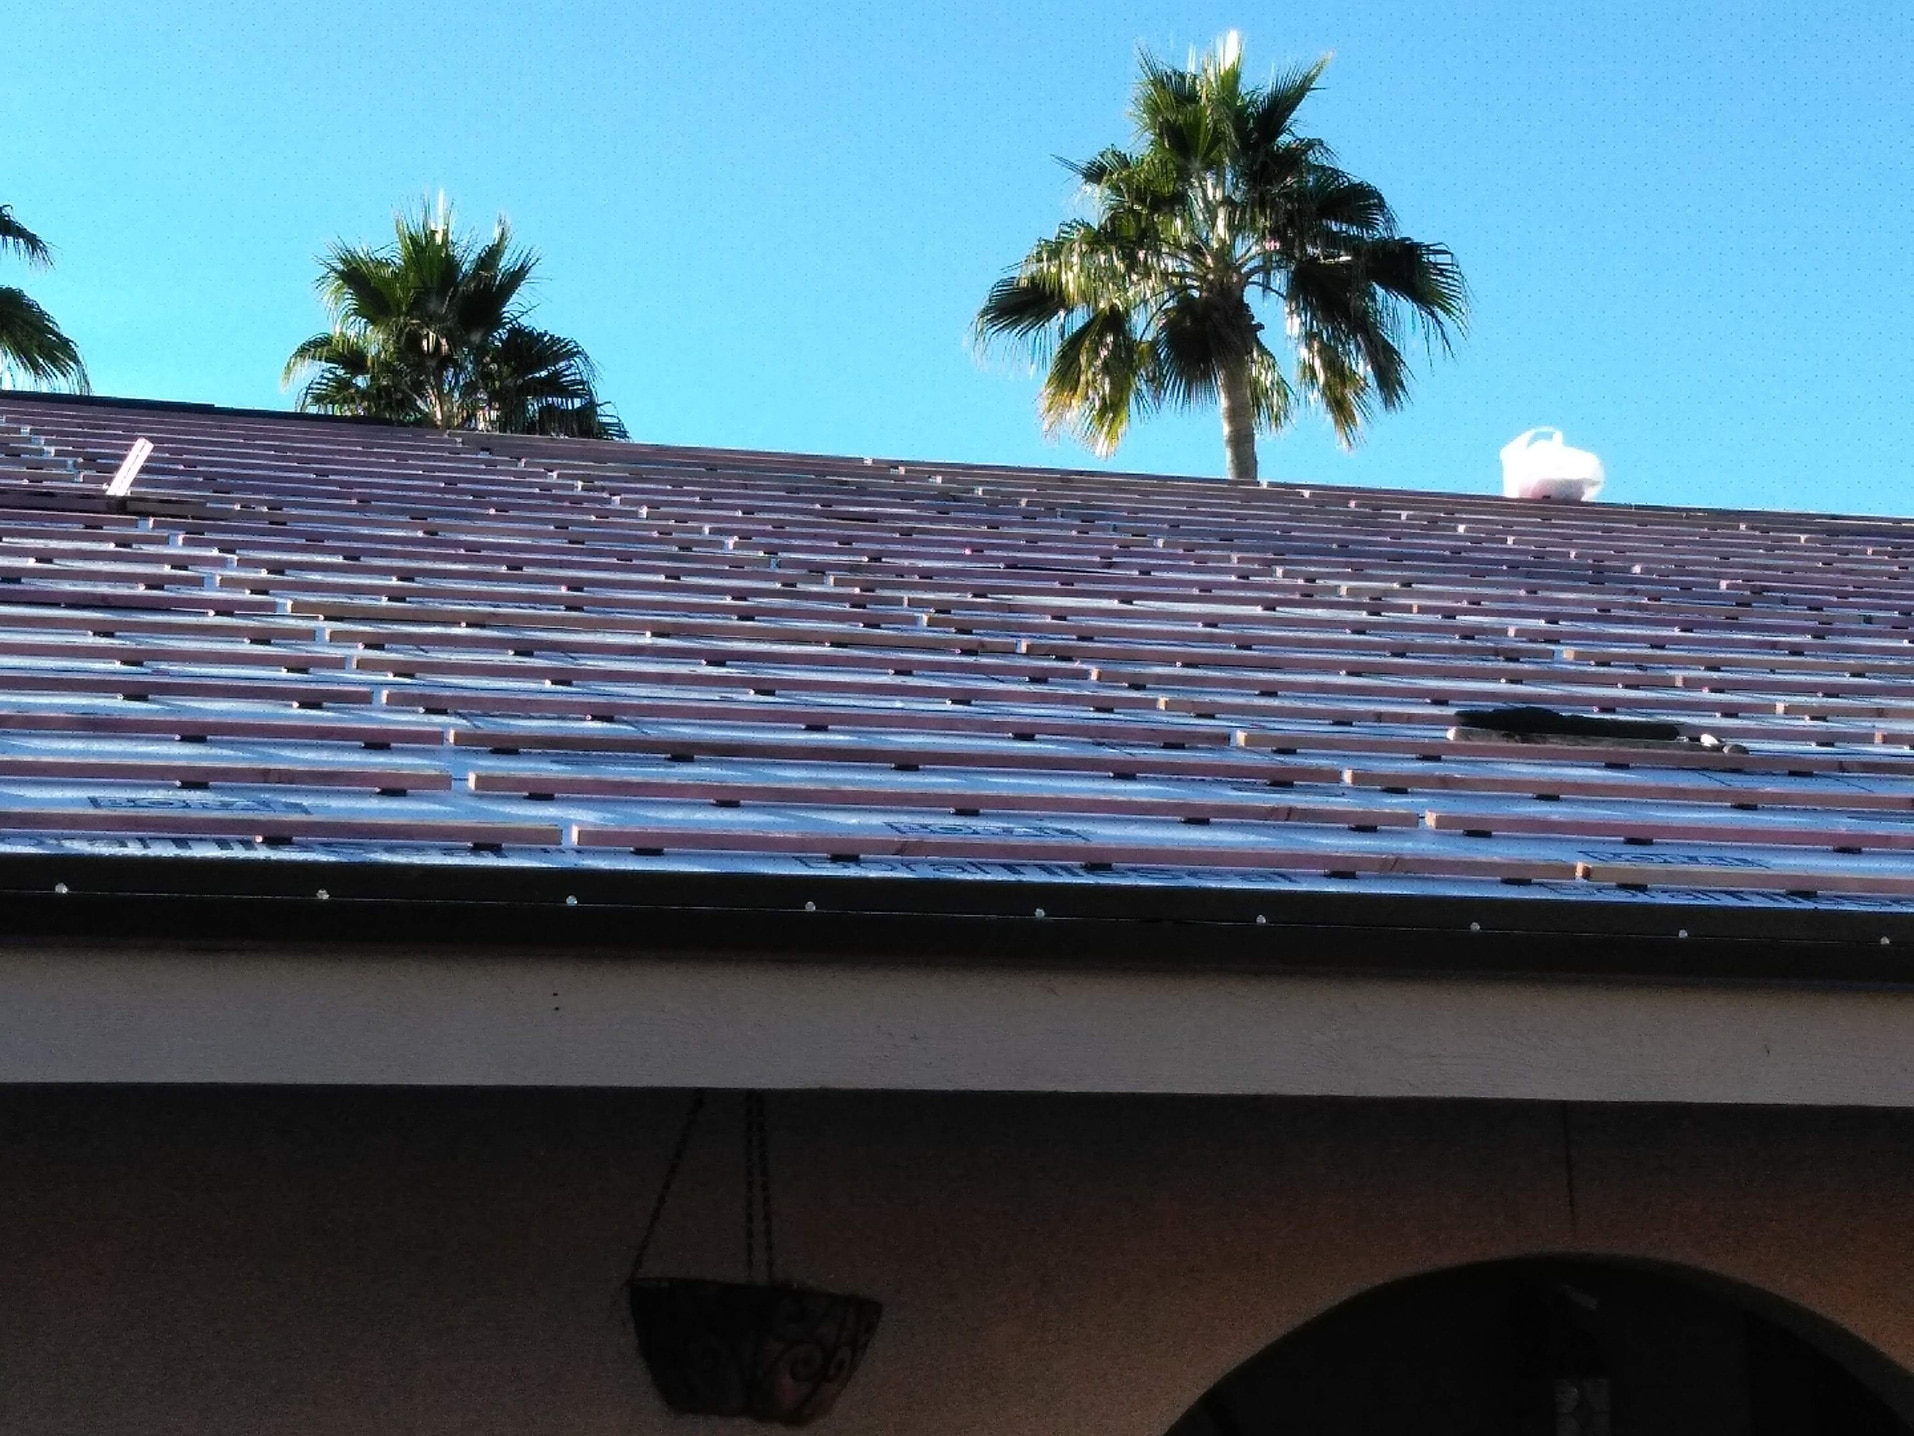 Mission statement for Arizona roofing company